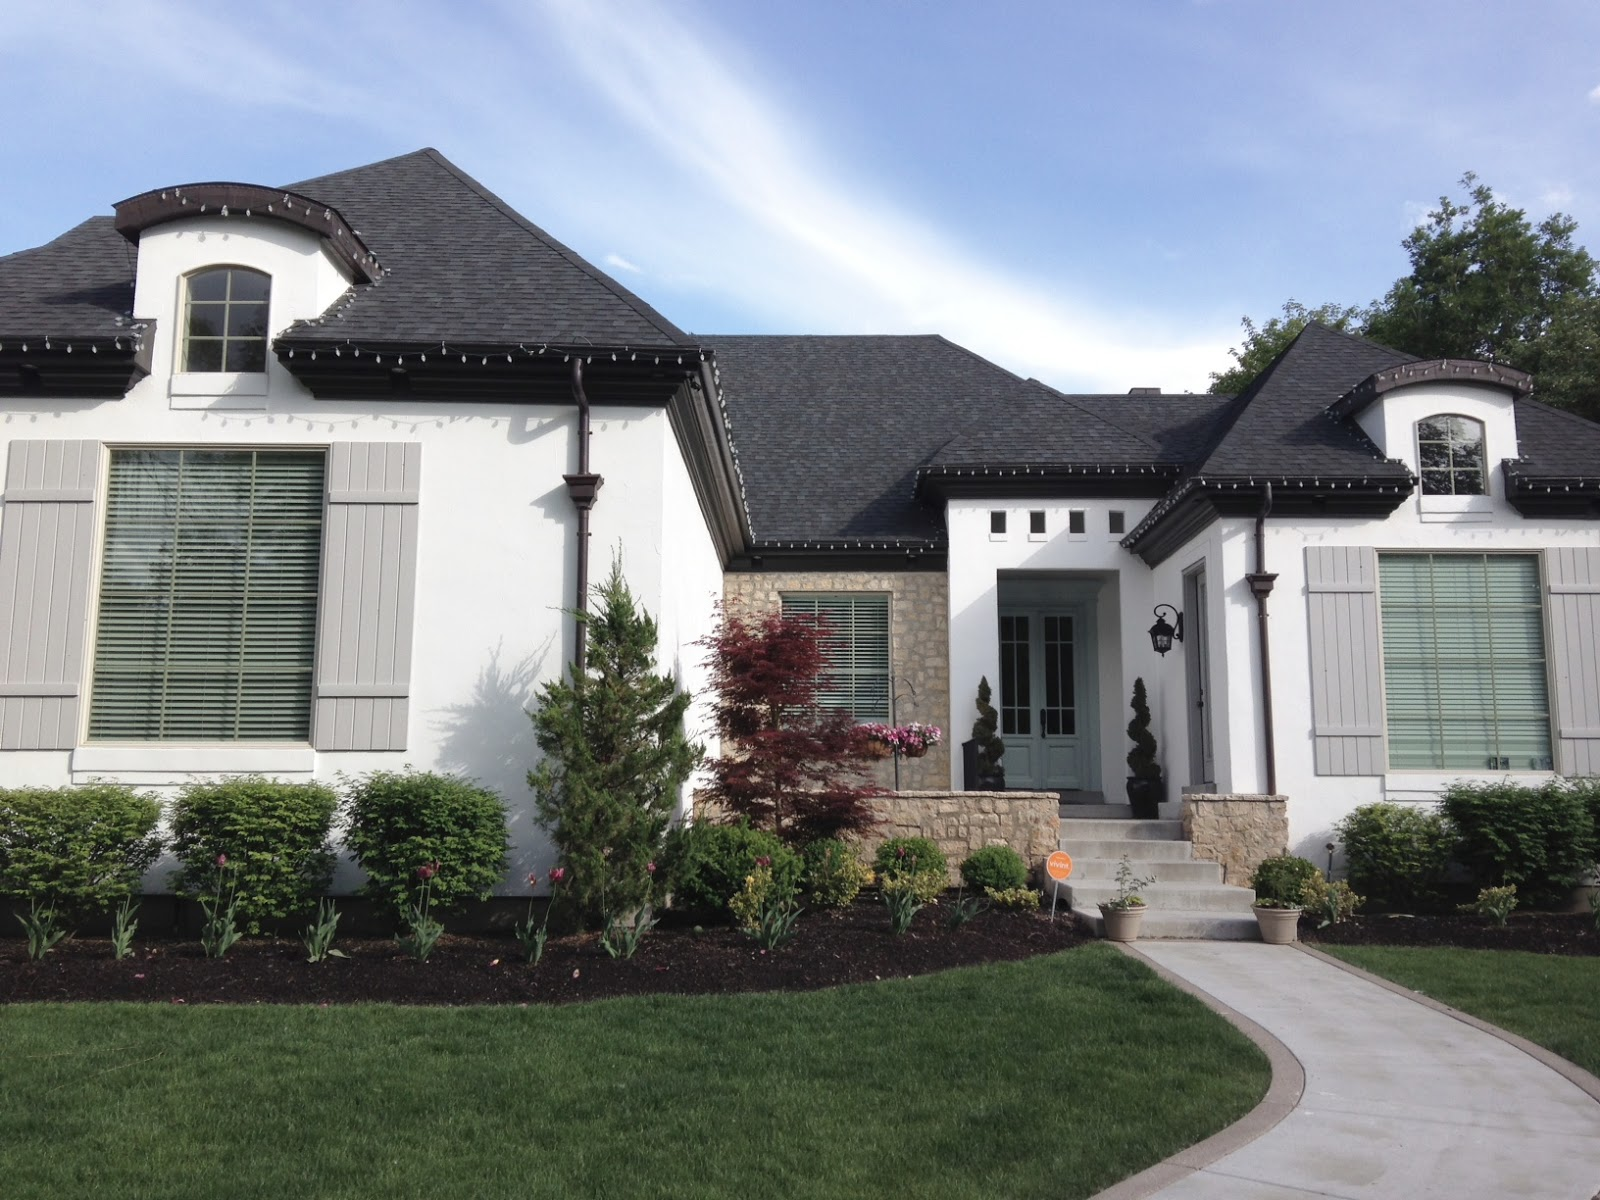 What Are The New Black Windows In Homes Made Of